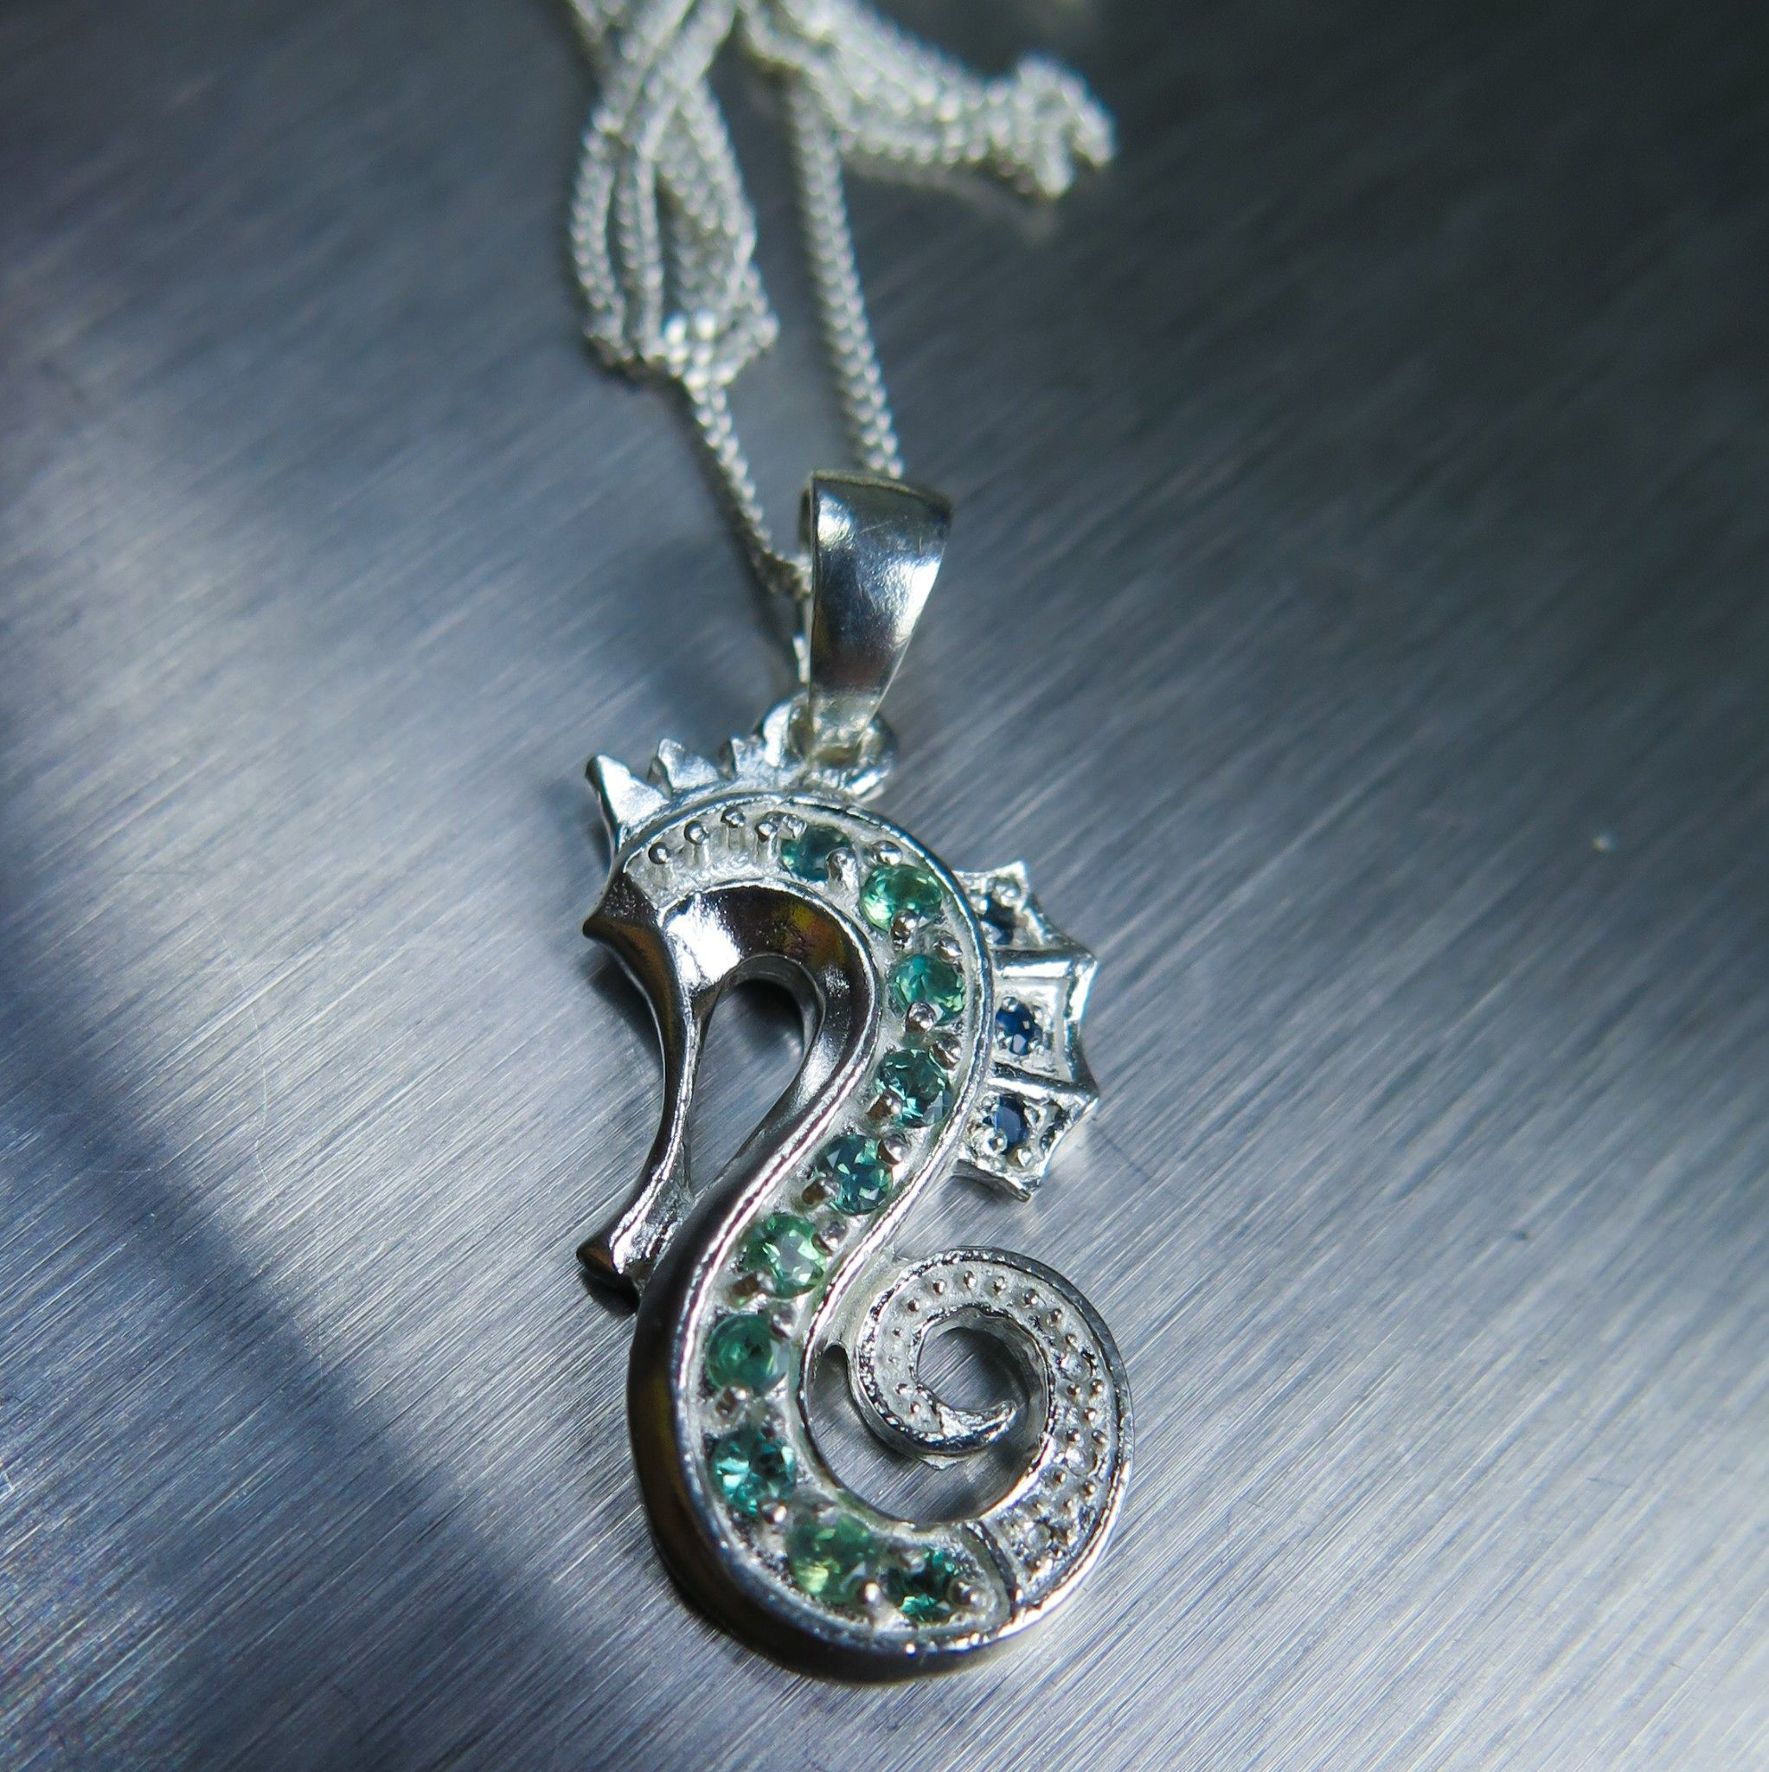 Natural Alexandrite Necklace: Natural Alexandrite, Benitoite & Diamond Necklace Sterling